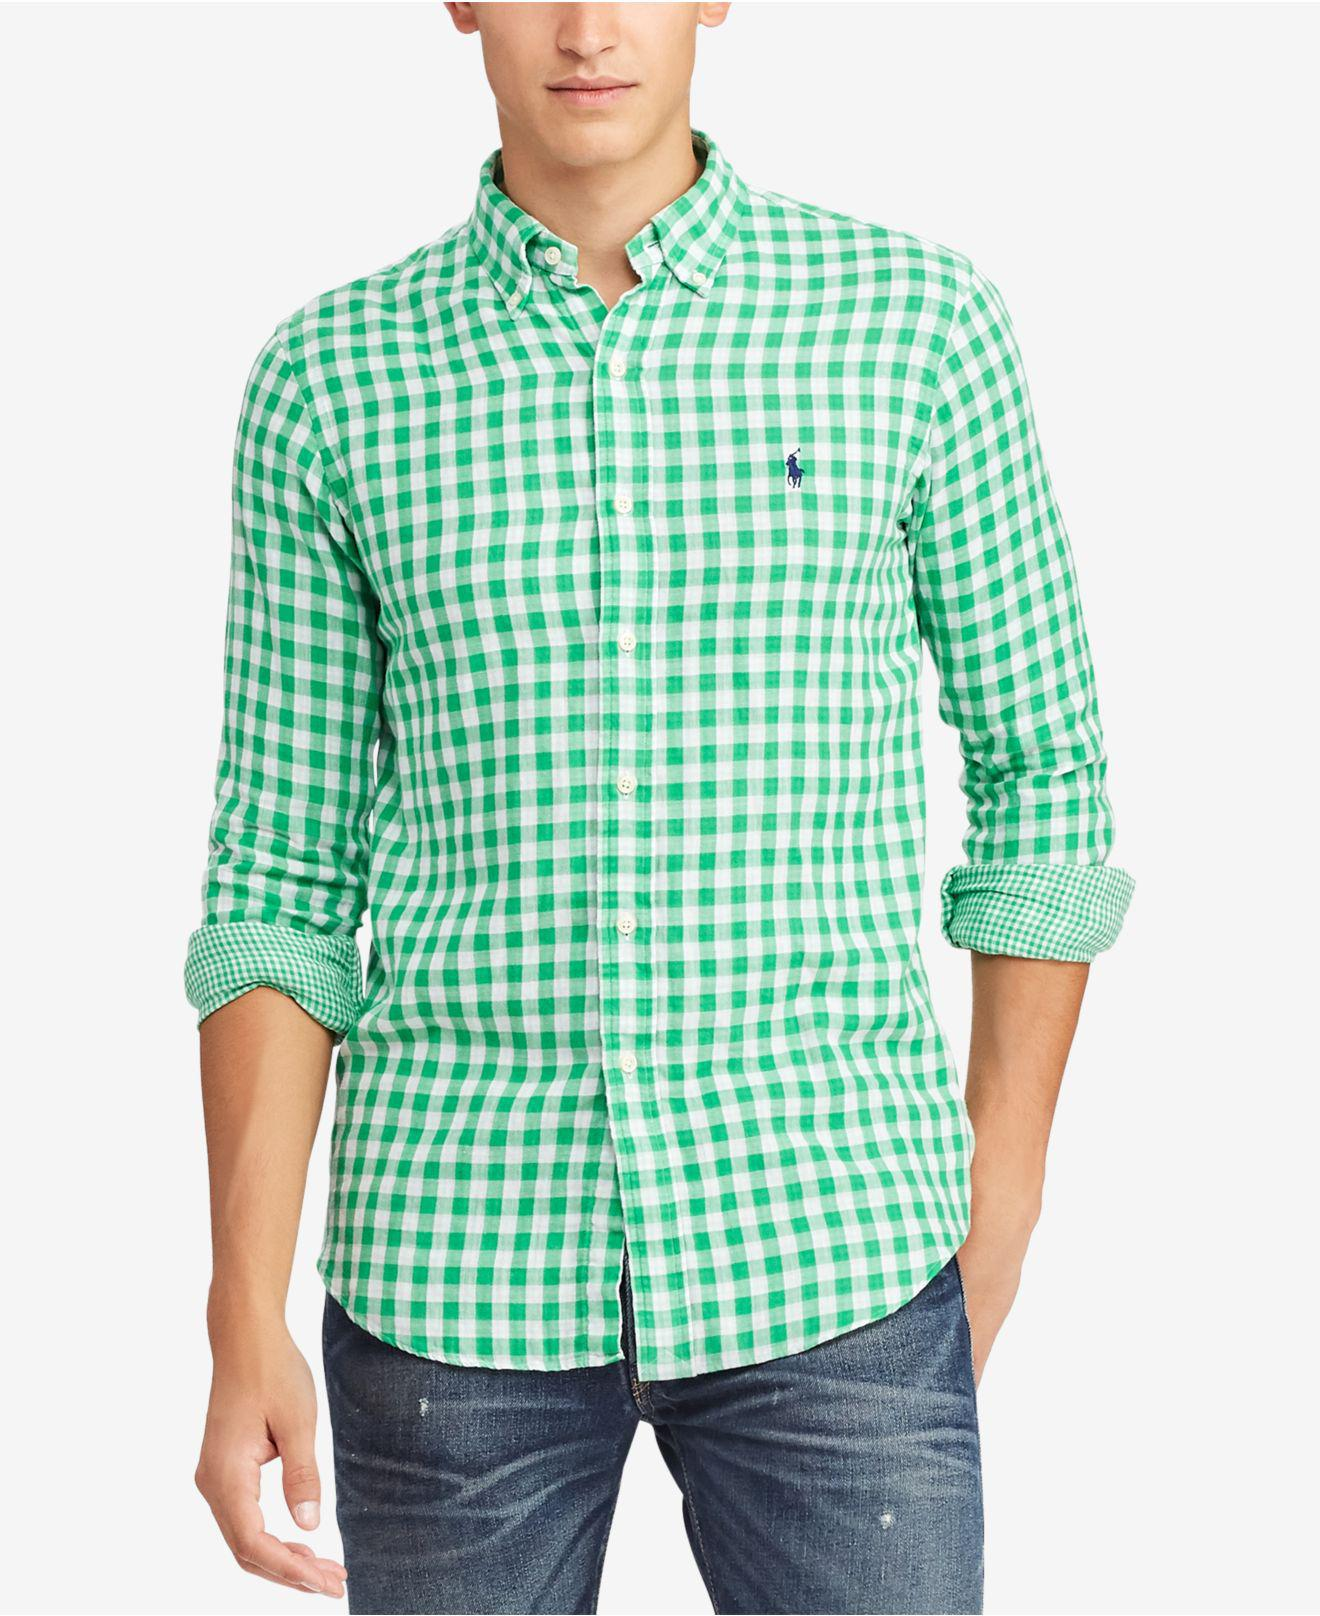 7023298139 Lyst - Polo Ralph Lauren Gingham Classic Fit Button-down Shirt in ...